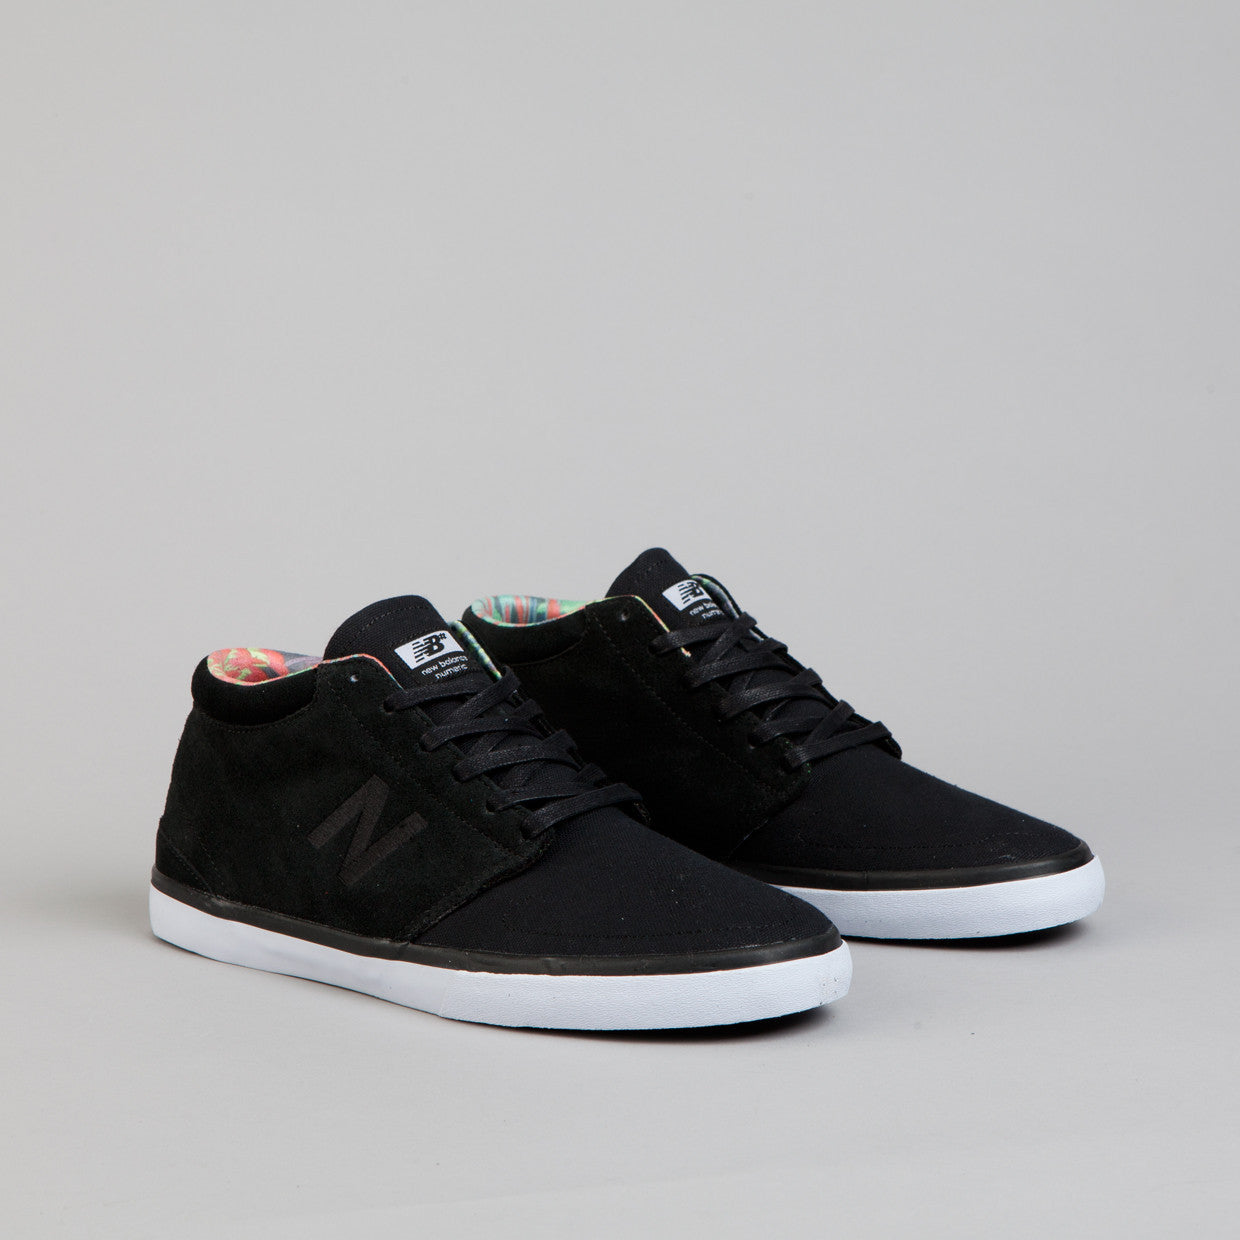 New Balance Numeric Brighton High 354 Shoes - Black / White